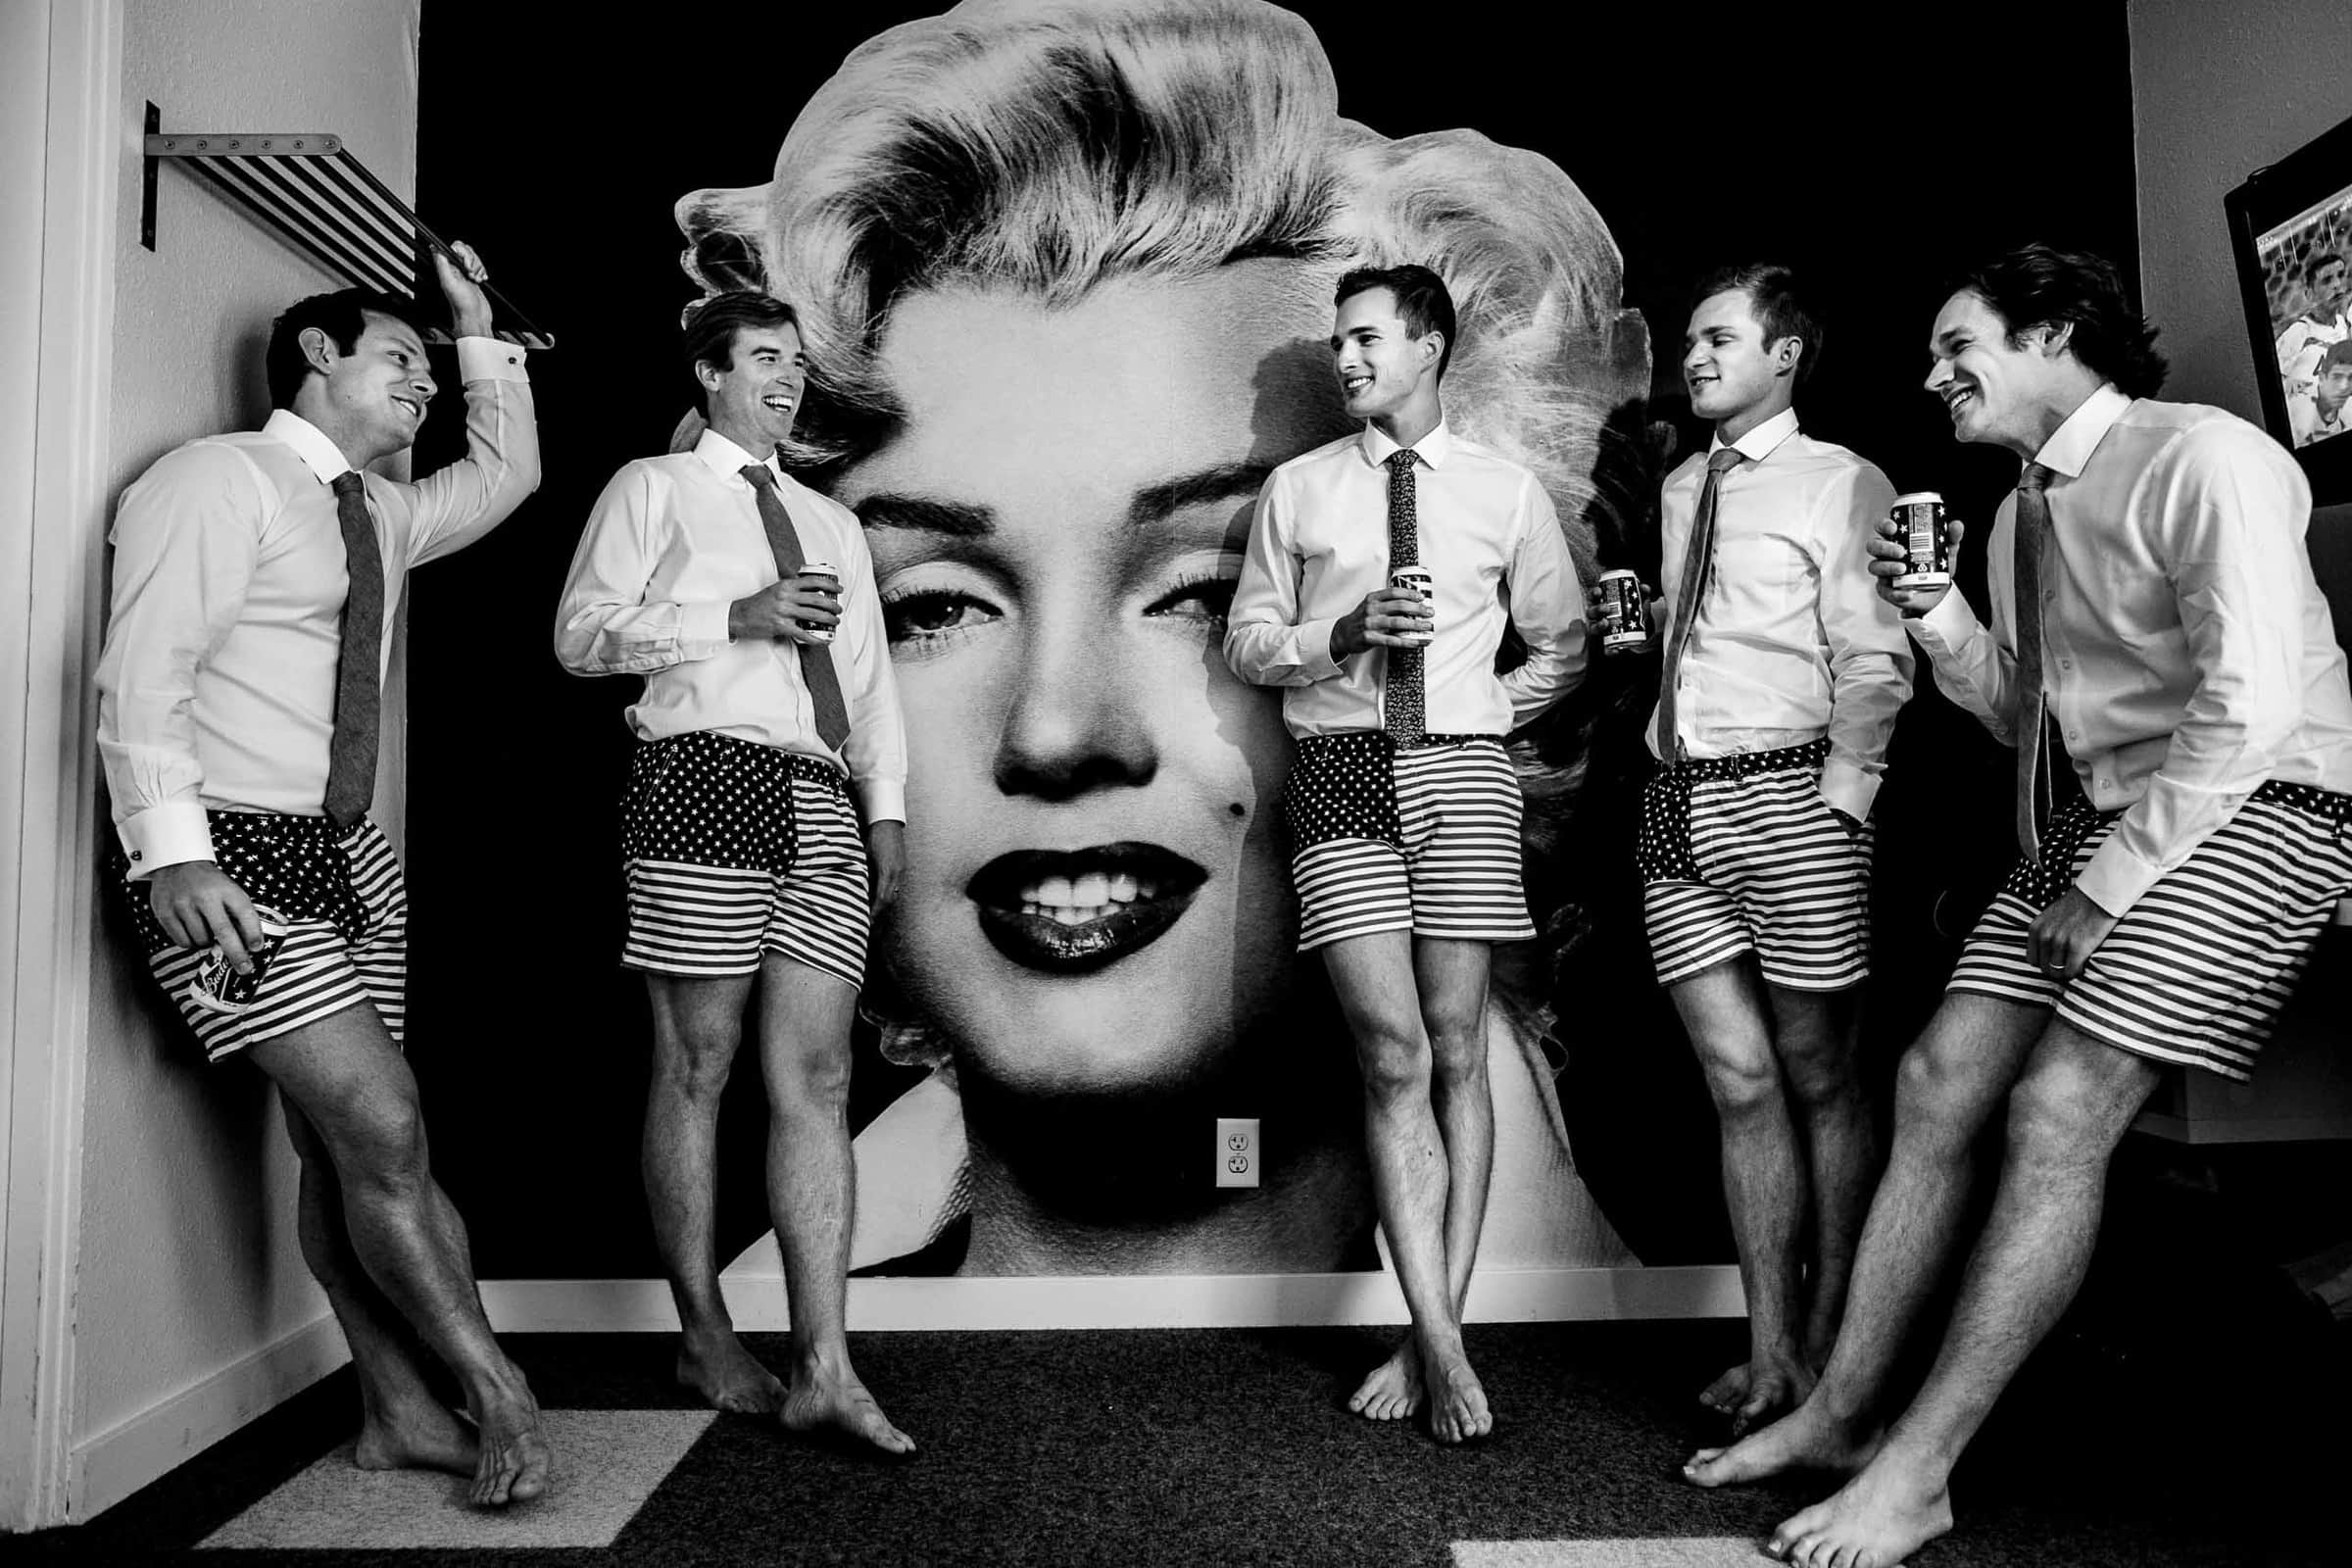 A candid black and white photo of groomsmen getting ready together with a Marylin Monroe portrait behind them before heading out to their camp angleos wedding